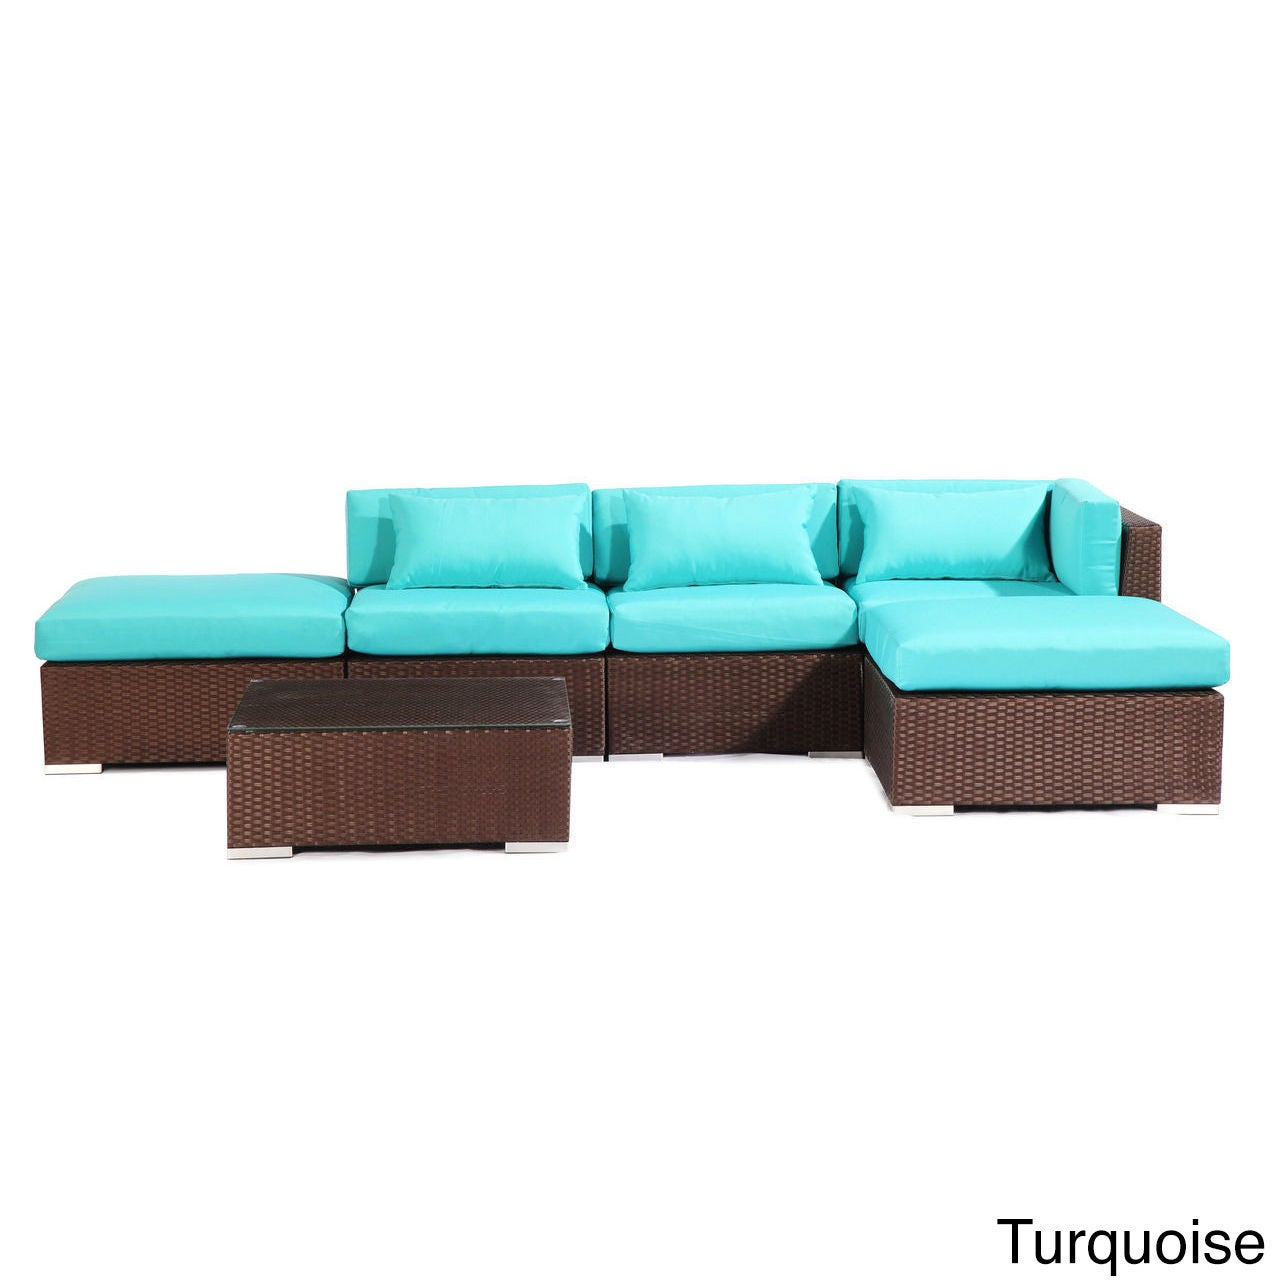 Modify-It Poipu 6-Piece Outdoor Patio Sofa Sectional Set ...